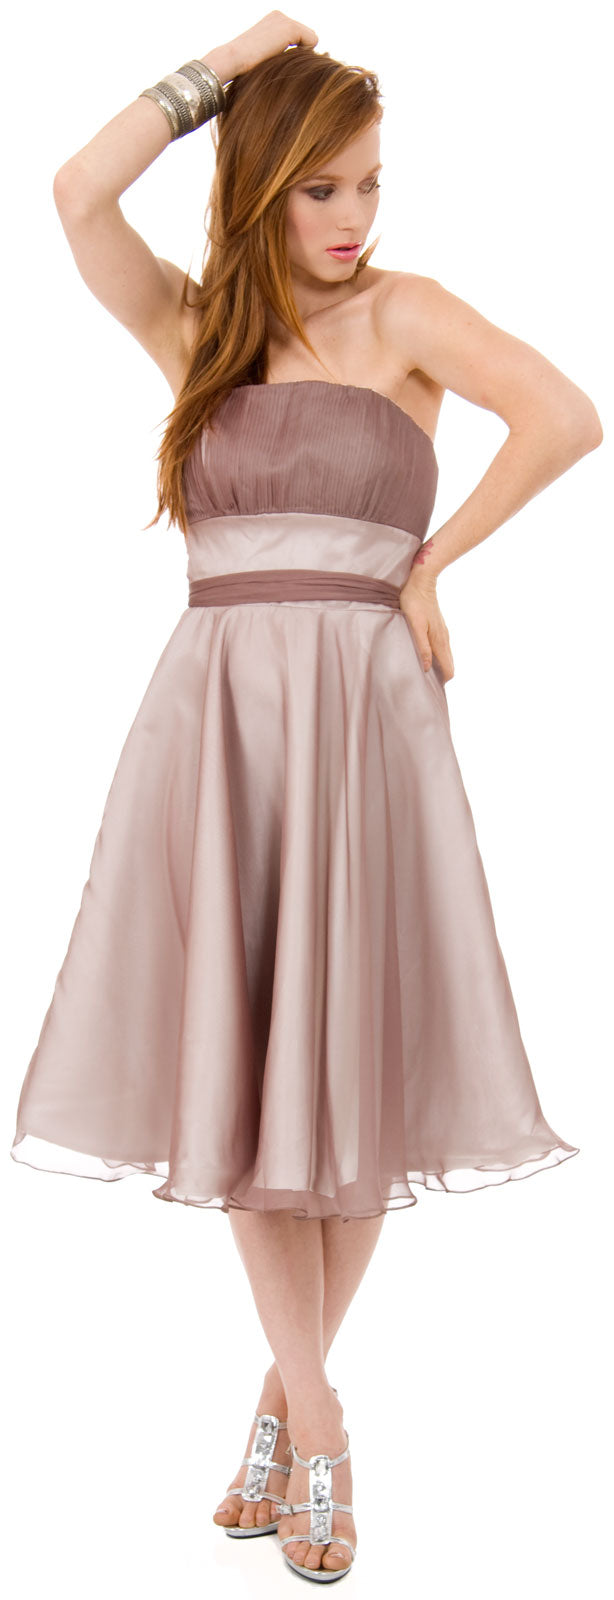 Image of Strapless Bridesmaid Dress With Detachable Sash in Mocha